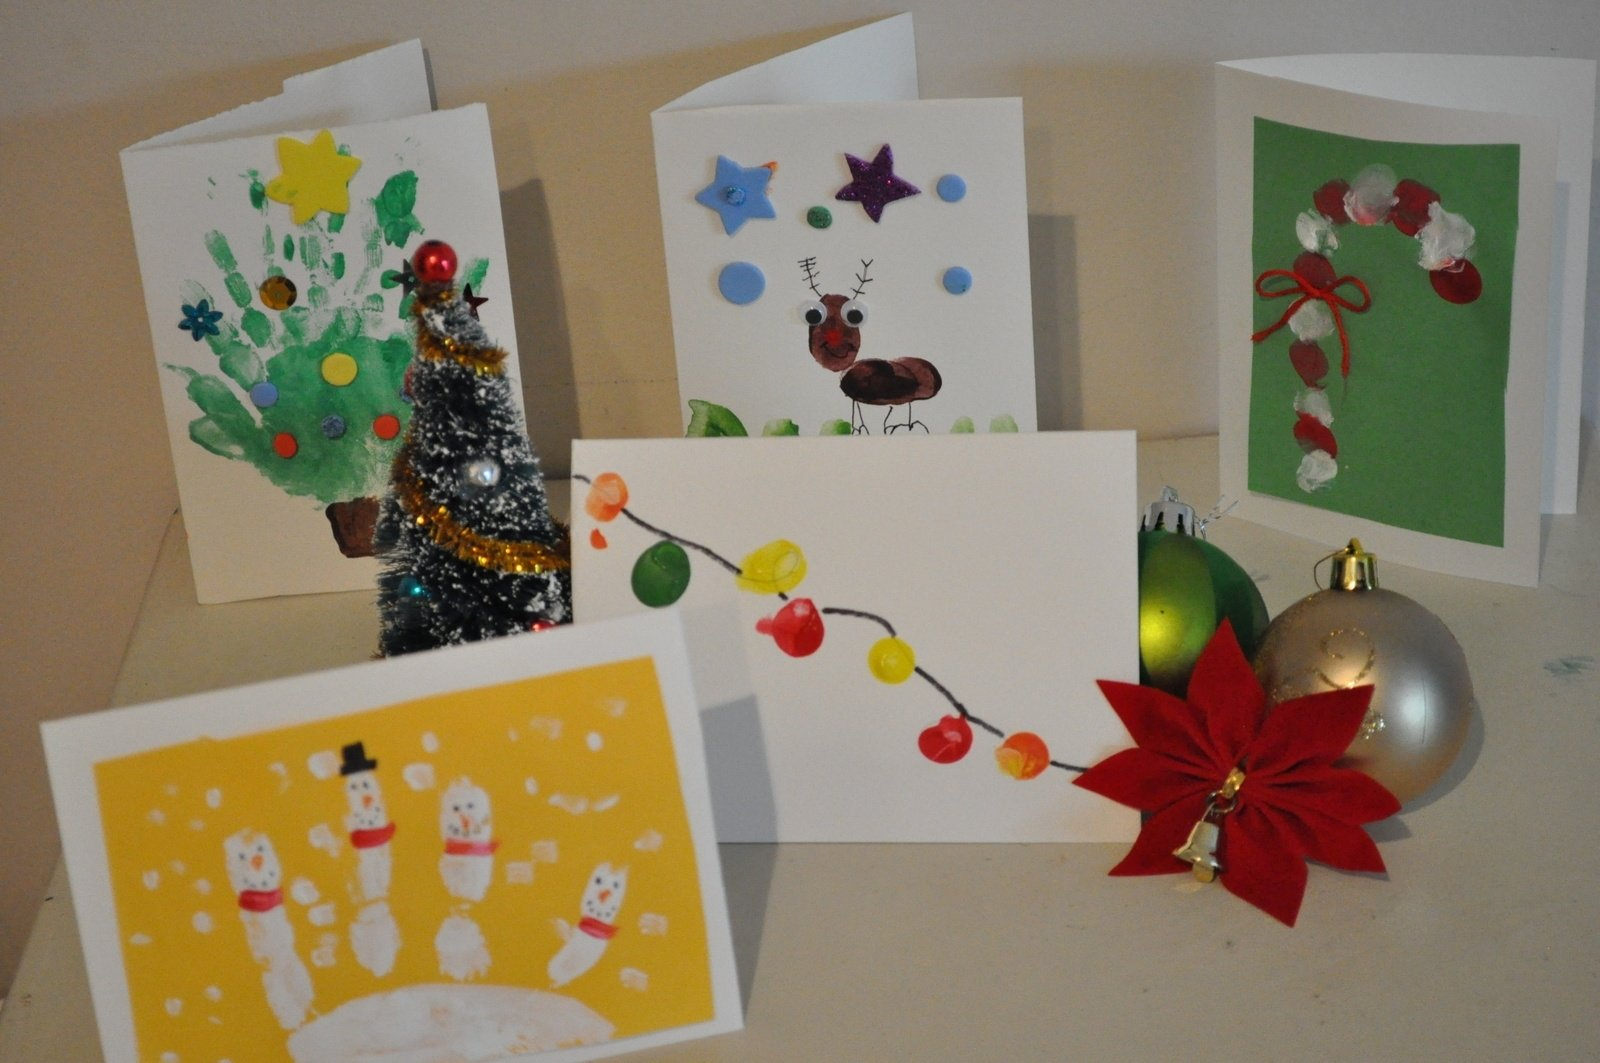 homemade christmas card ideas to do with kids • brisbane kids